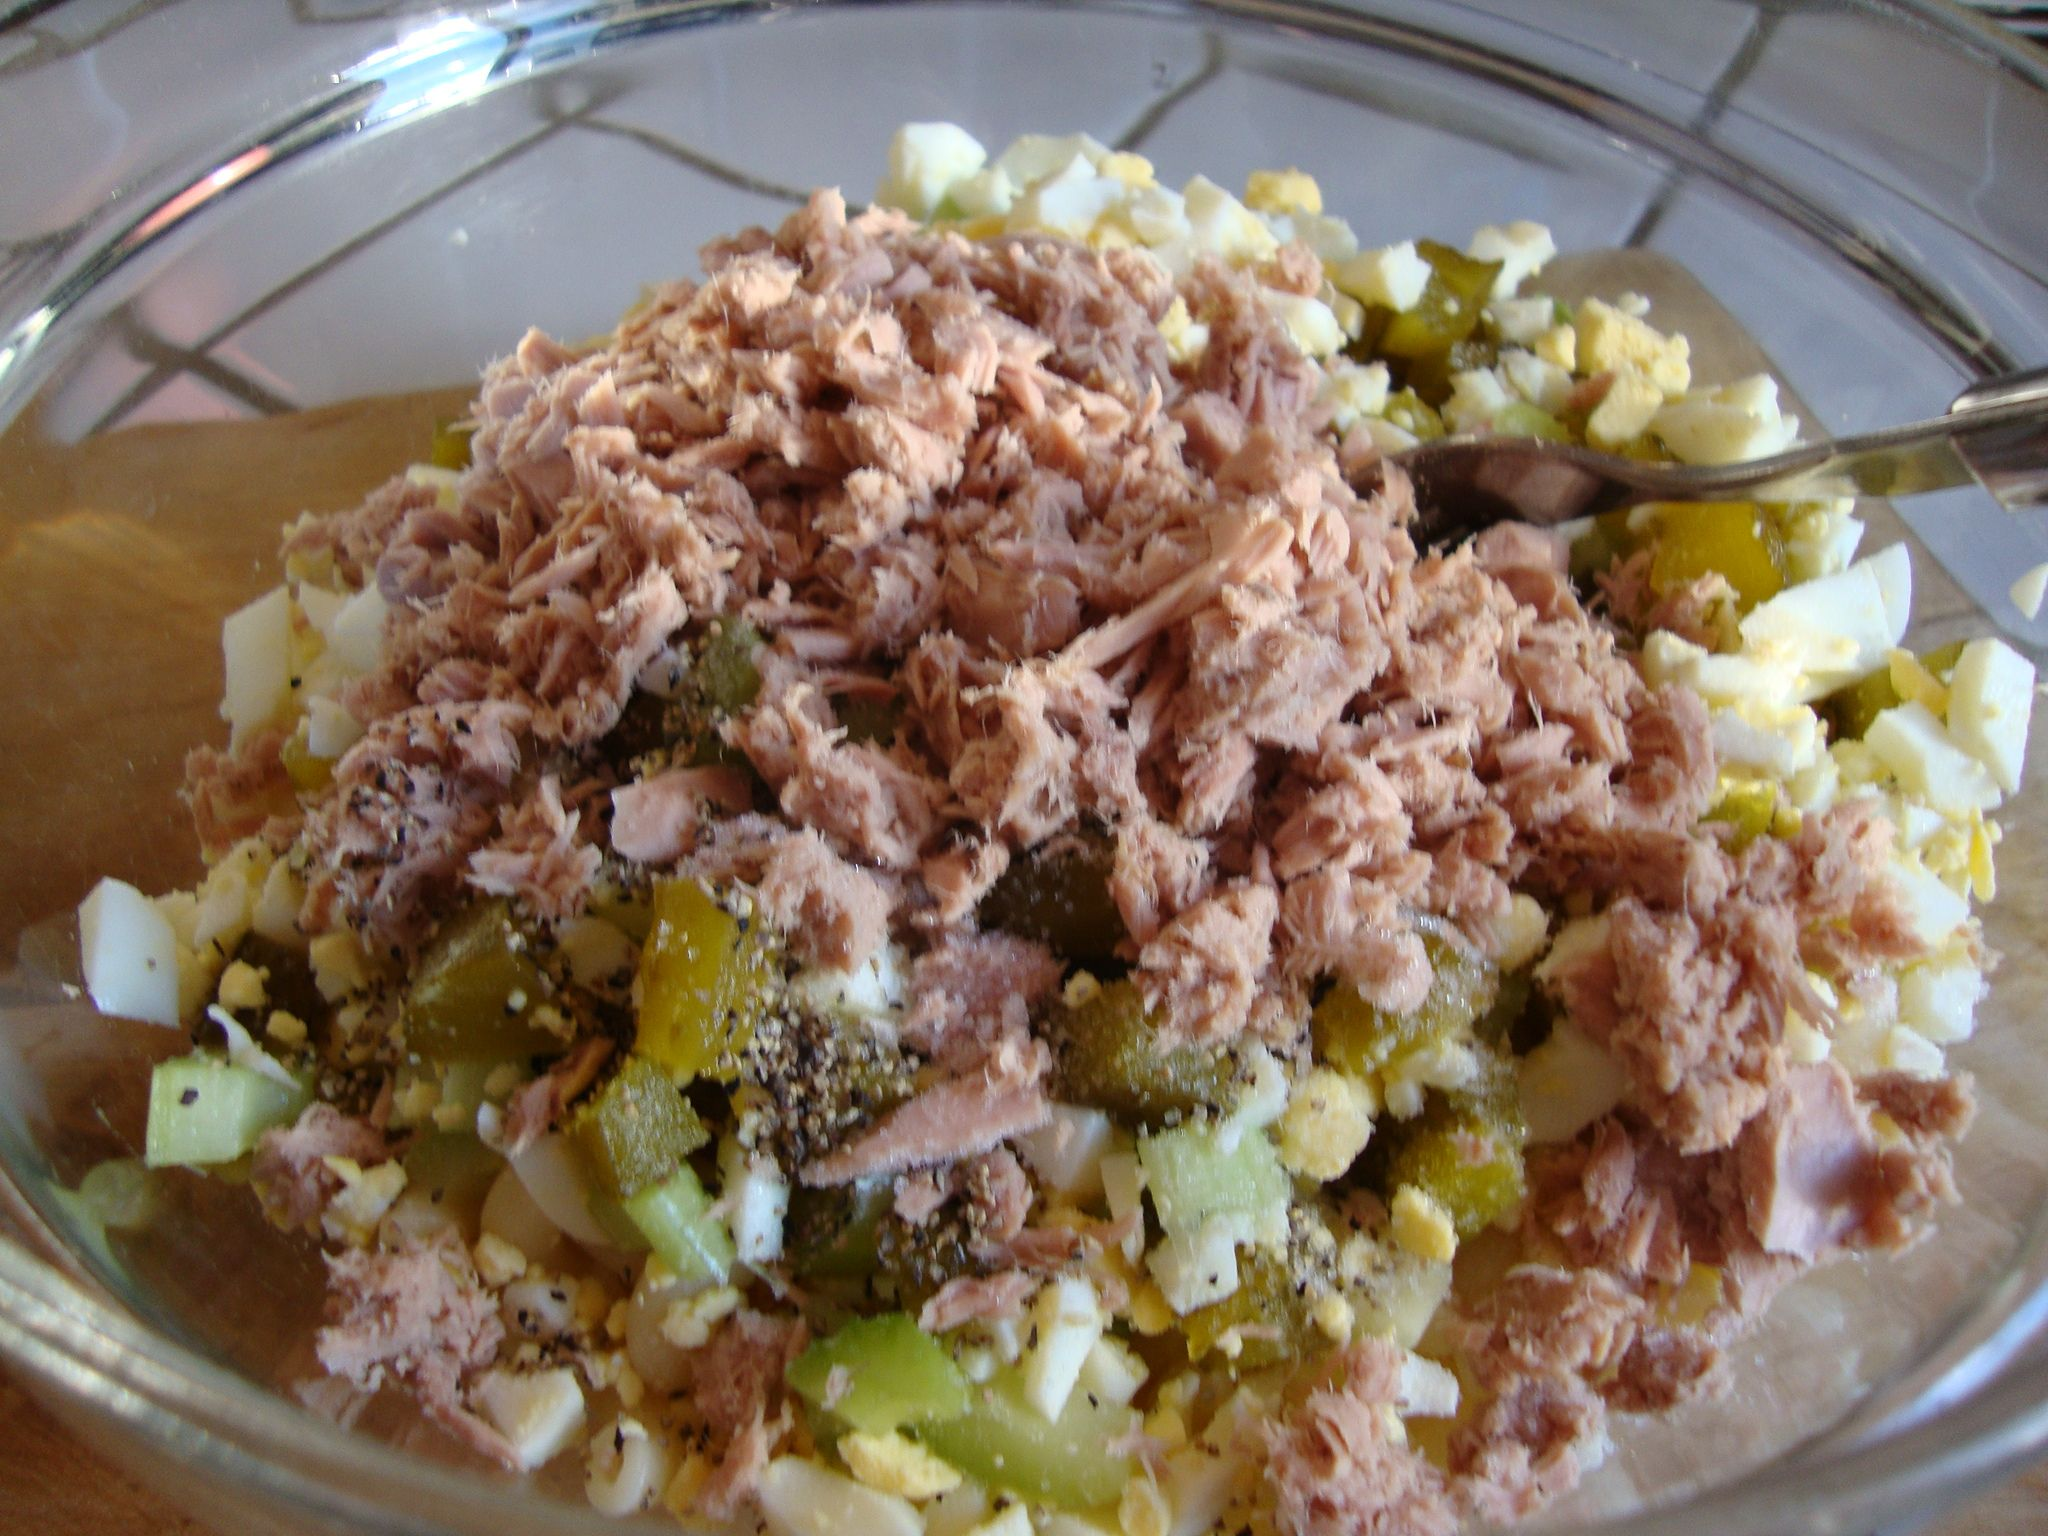 Tuna macaroni salad recipe the best tuna macaroni salad for Macaroni salad with tuna fish